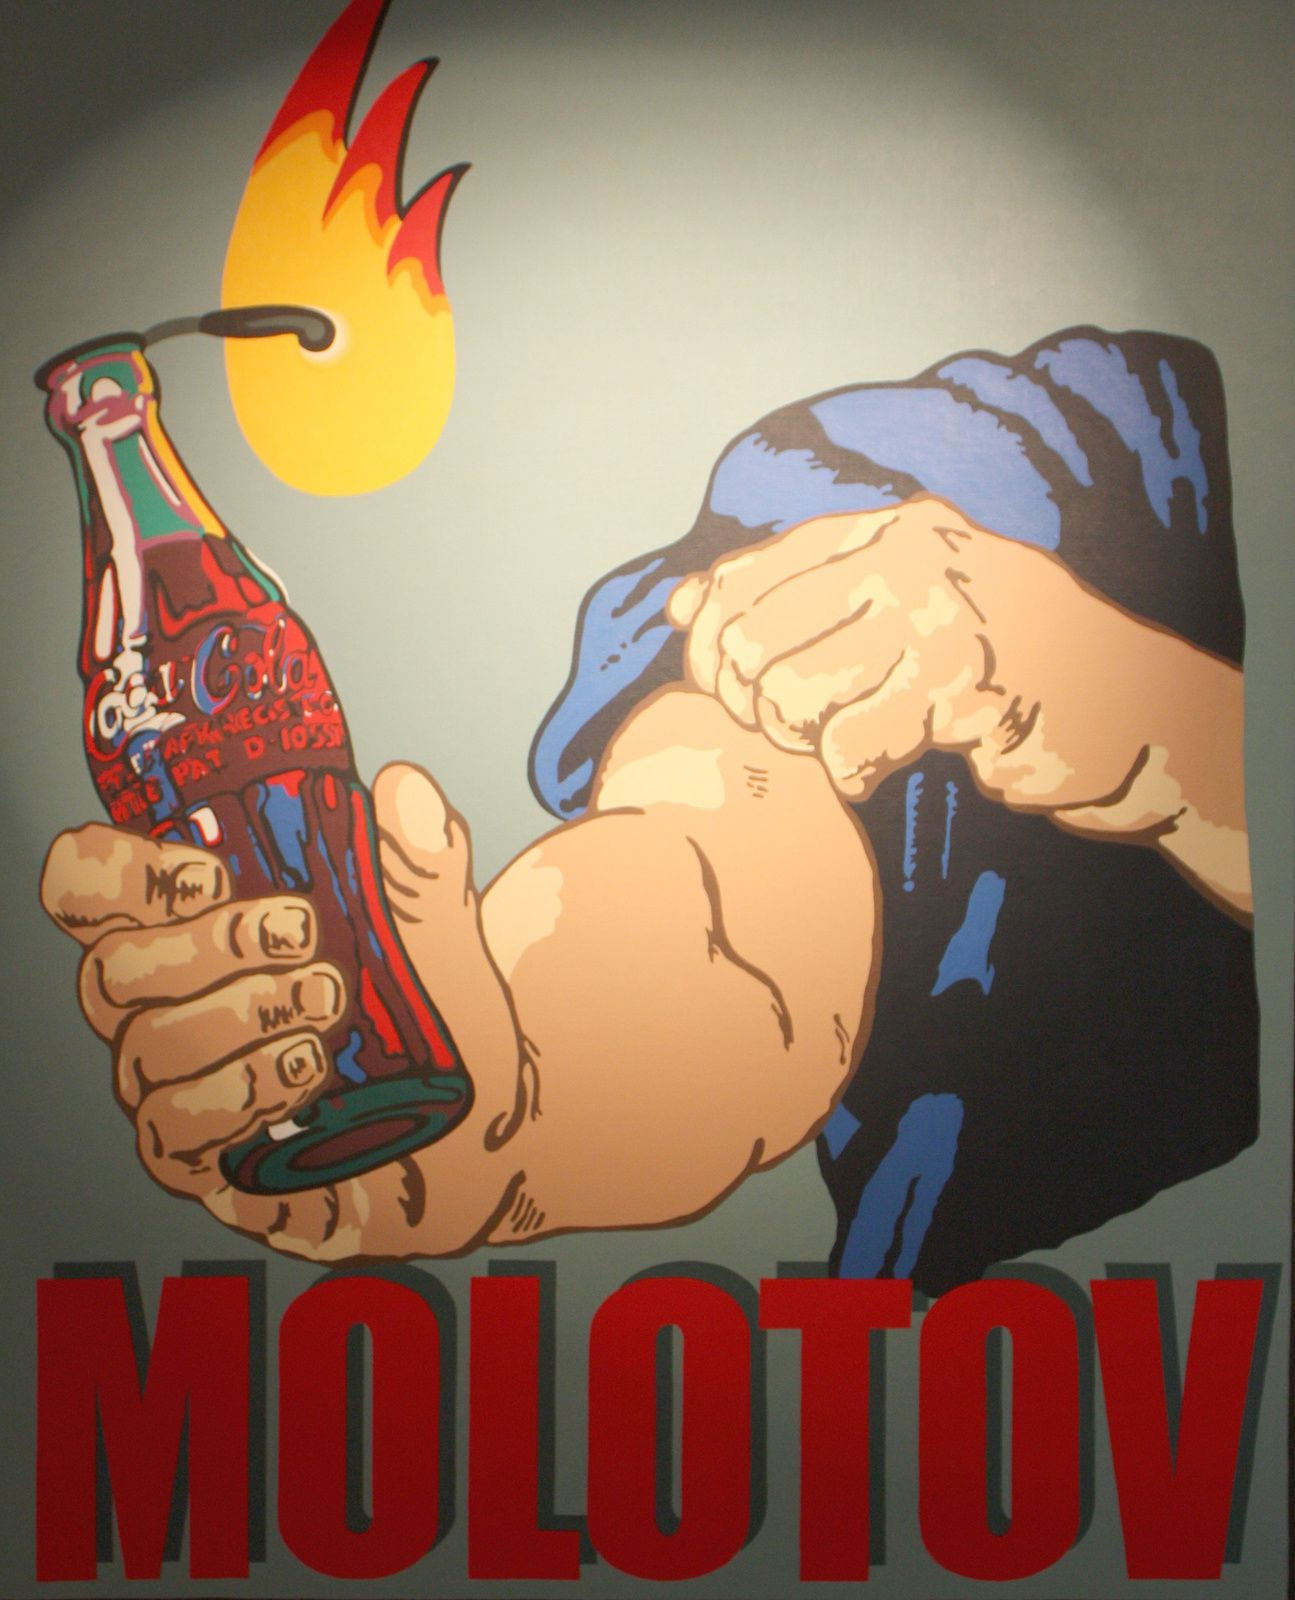 Molotov Cocktail, 2002 de Alexander KOSOLAPOV